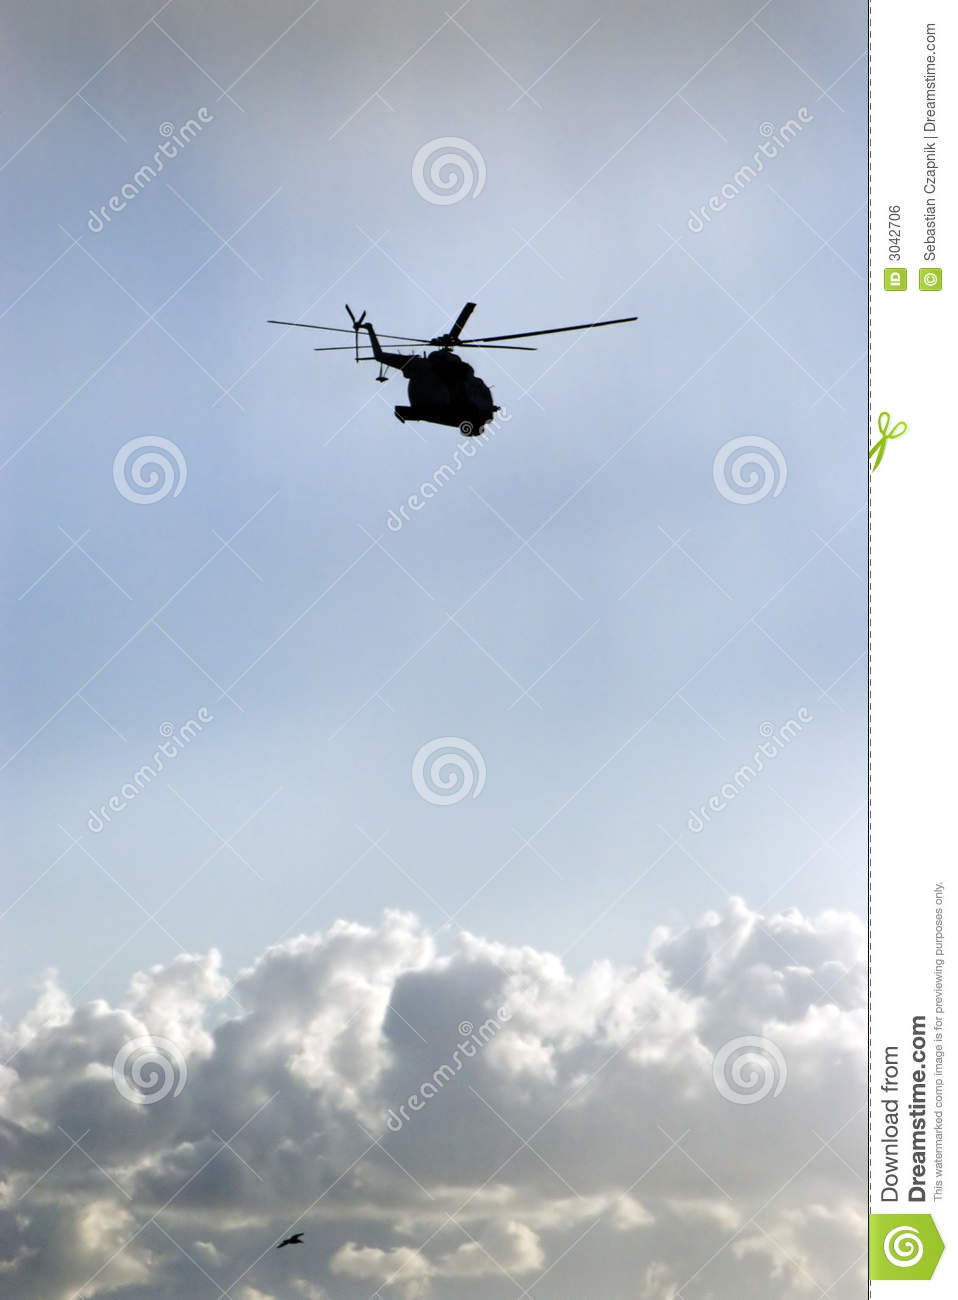 Helicopter and bird